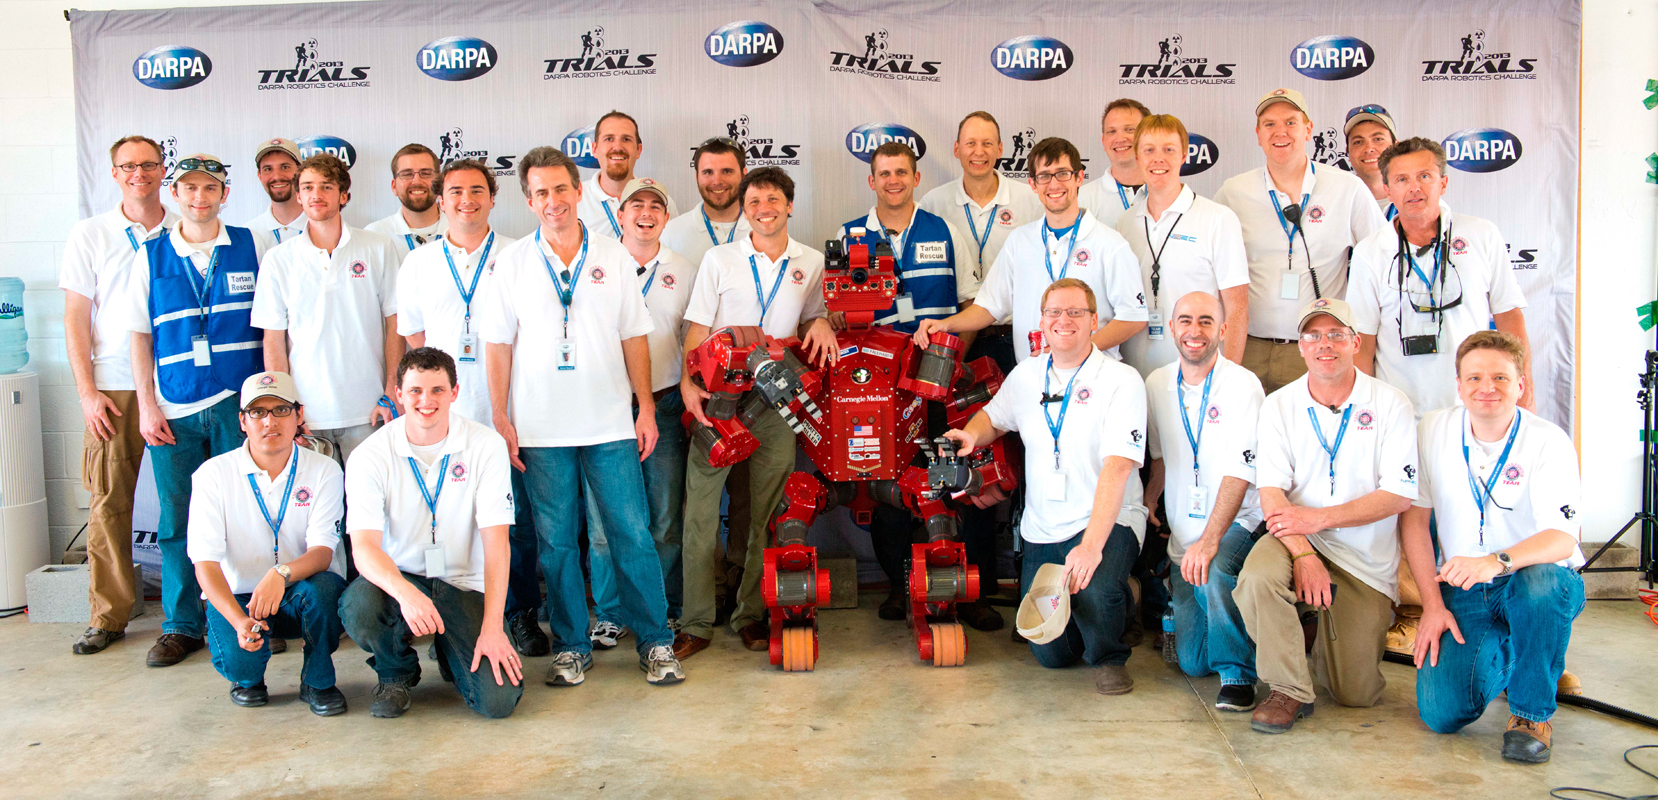 The Tartan Resucue Team poses with its third-place robot, CHIMP. (credit: Courtesy of Nick Letwin)